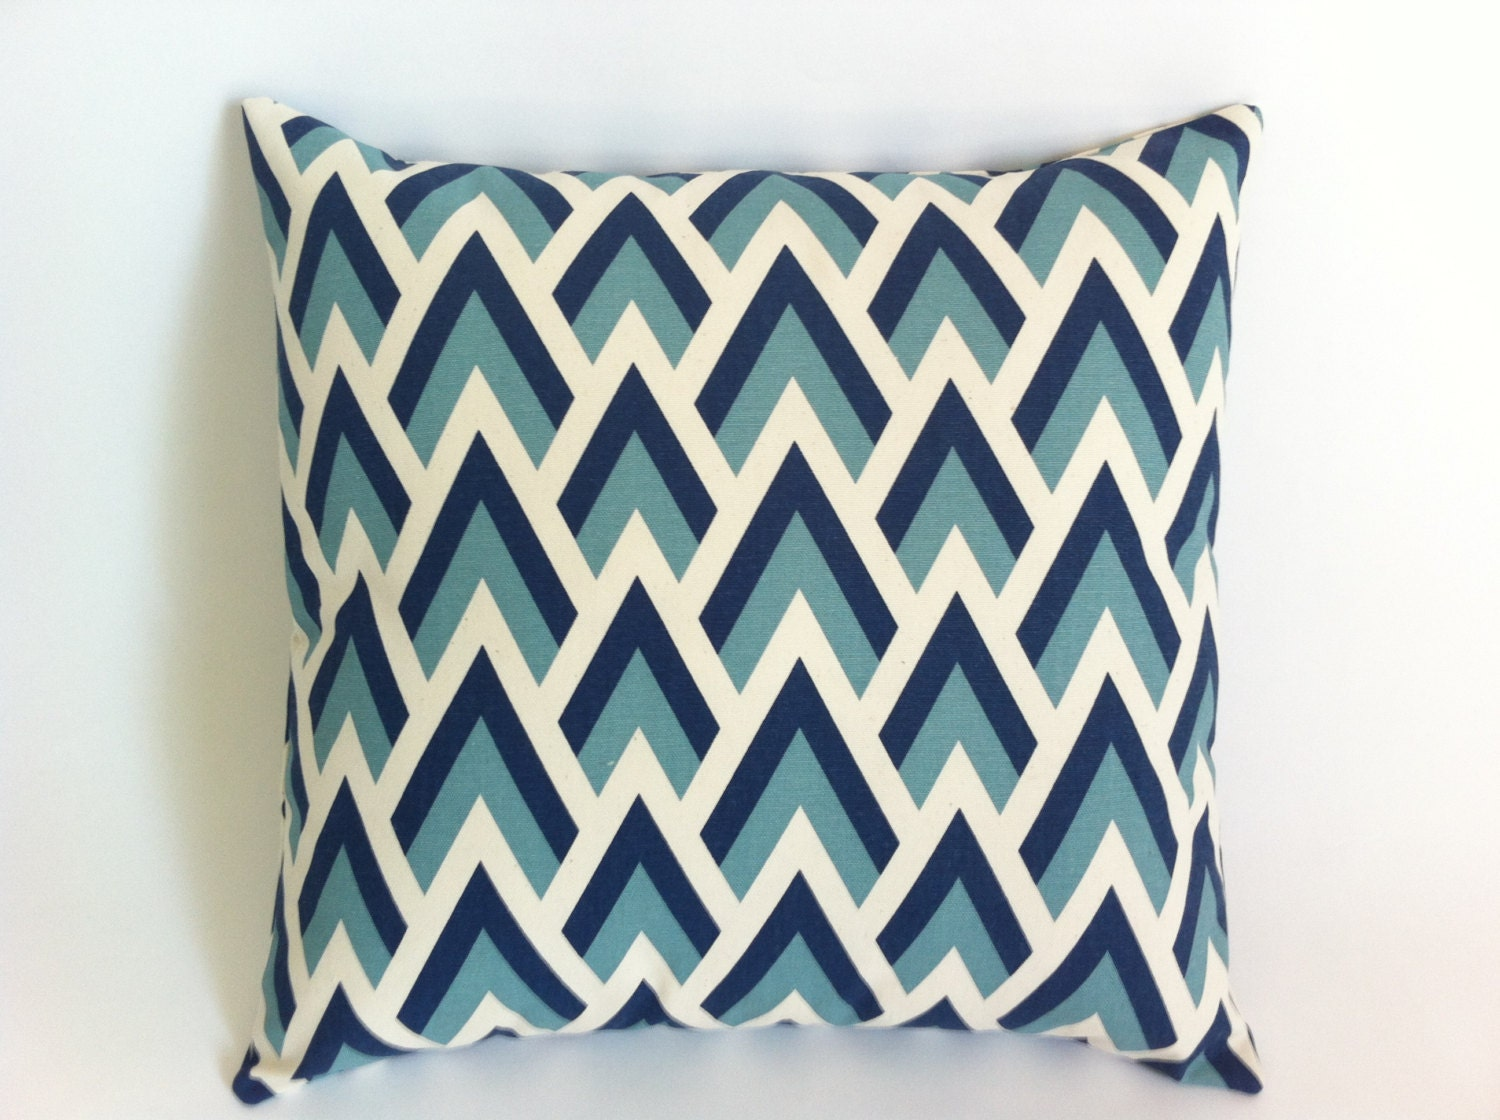 Decorative Pillow Covers With Zippers : One Navy and Aqua on Natural Decorative Throw Zipper Pillow